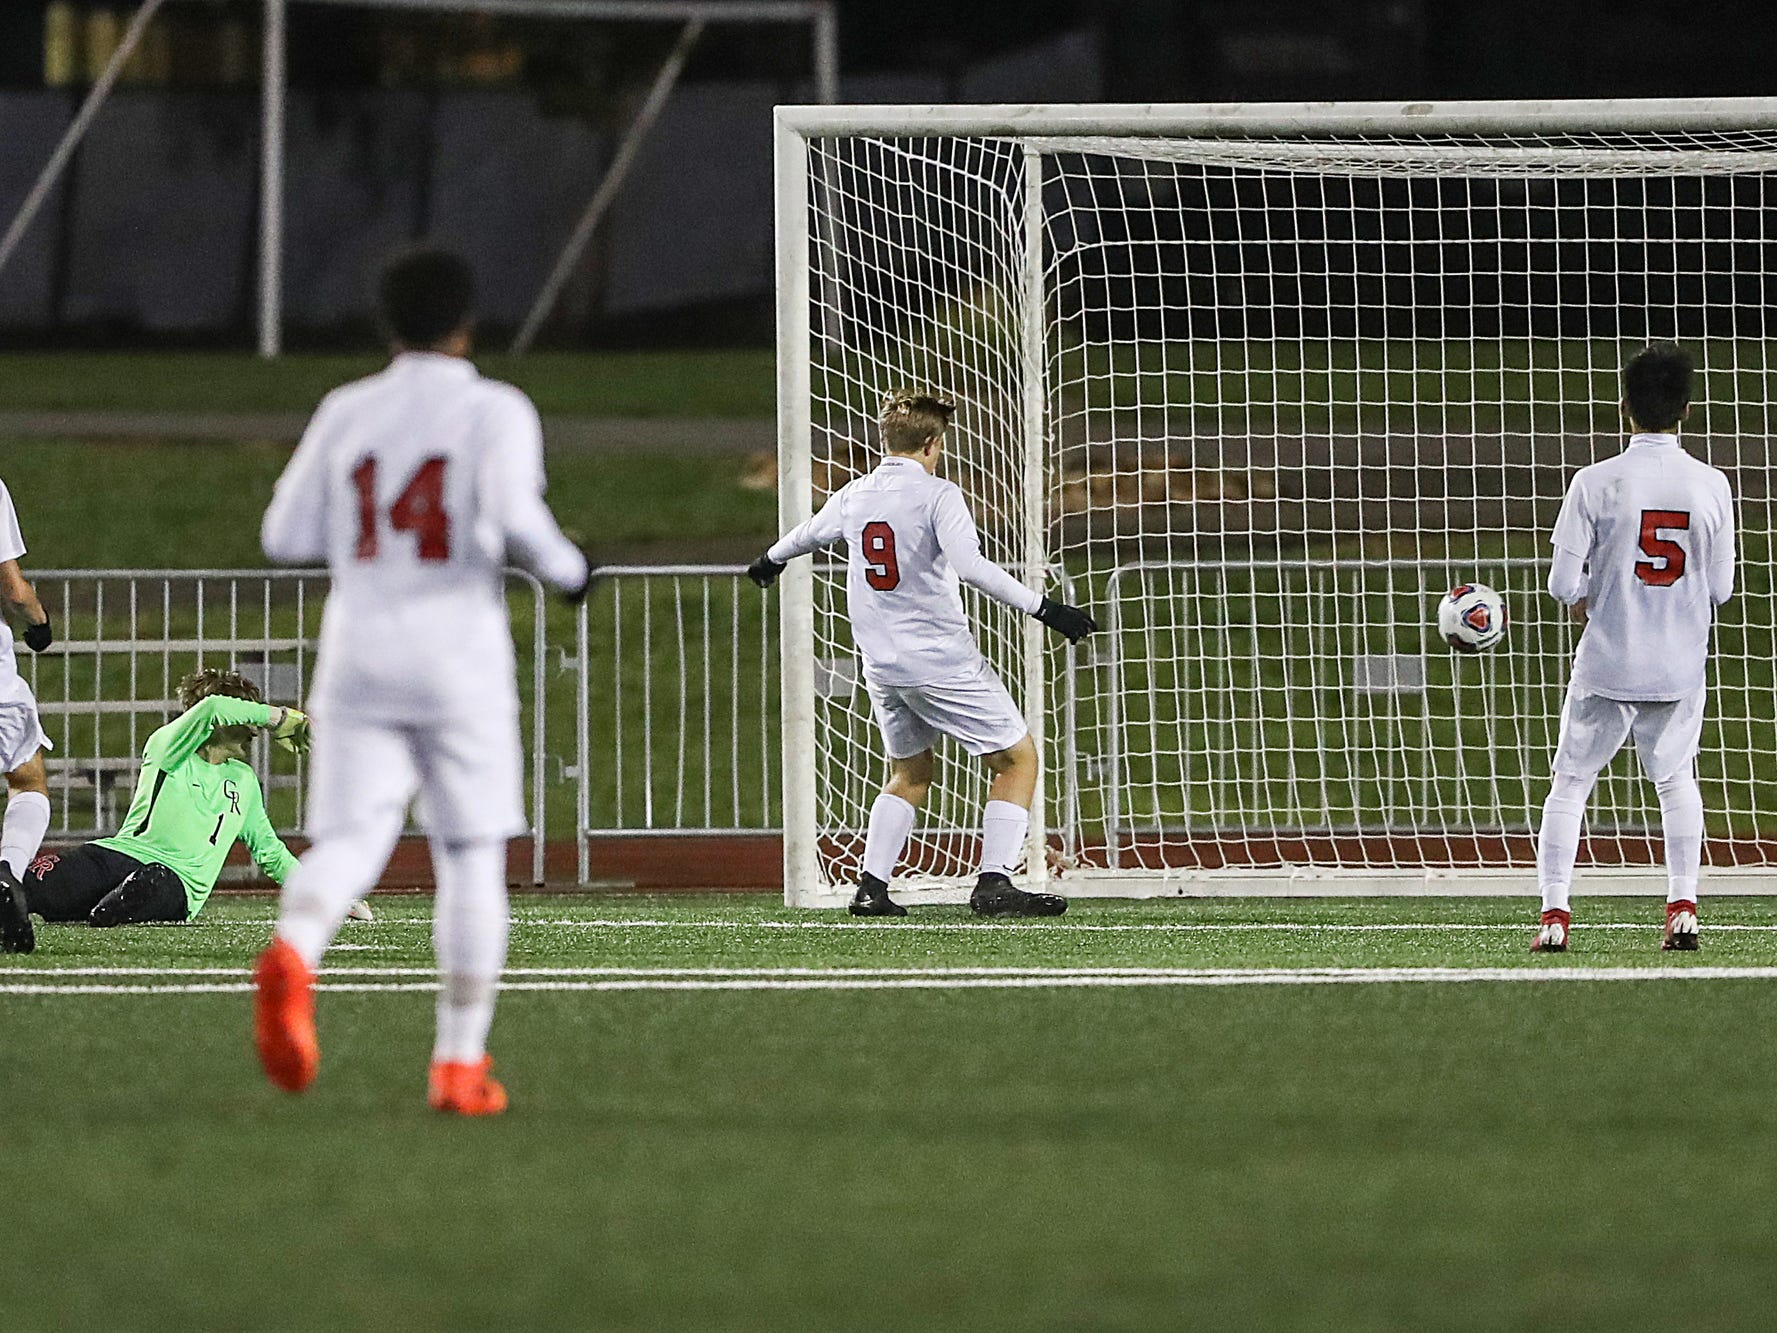 The Cardinal Ritter Raiders are unable to stop a goal by Hammond Bishop Noll Warriors midfielder Bruno Zamora (10) during the second half of IHSAA class 2A state finals at IUPUI's Michael A. Carroll Stadium in Indianapolis, Friday, Oct. 26, 2018. Hammond Bishop Noll defeated Cardinal Ritter, 1-0.